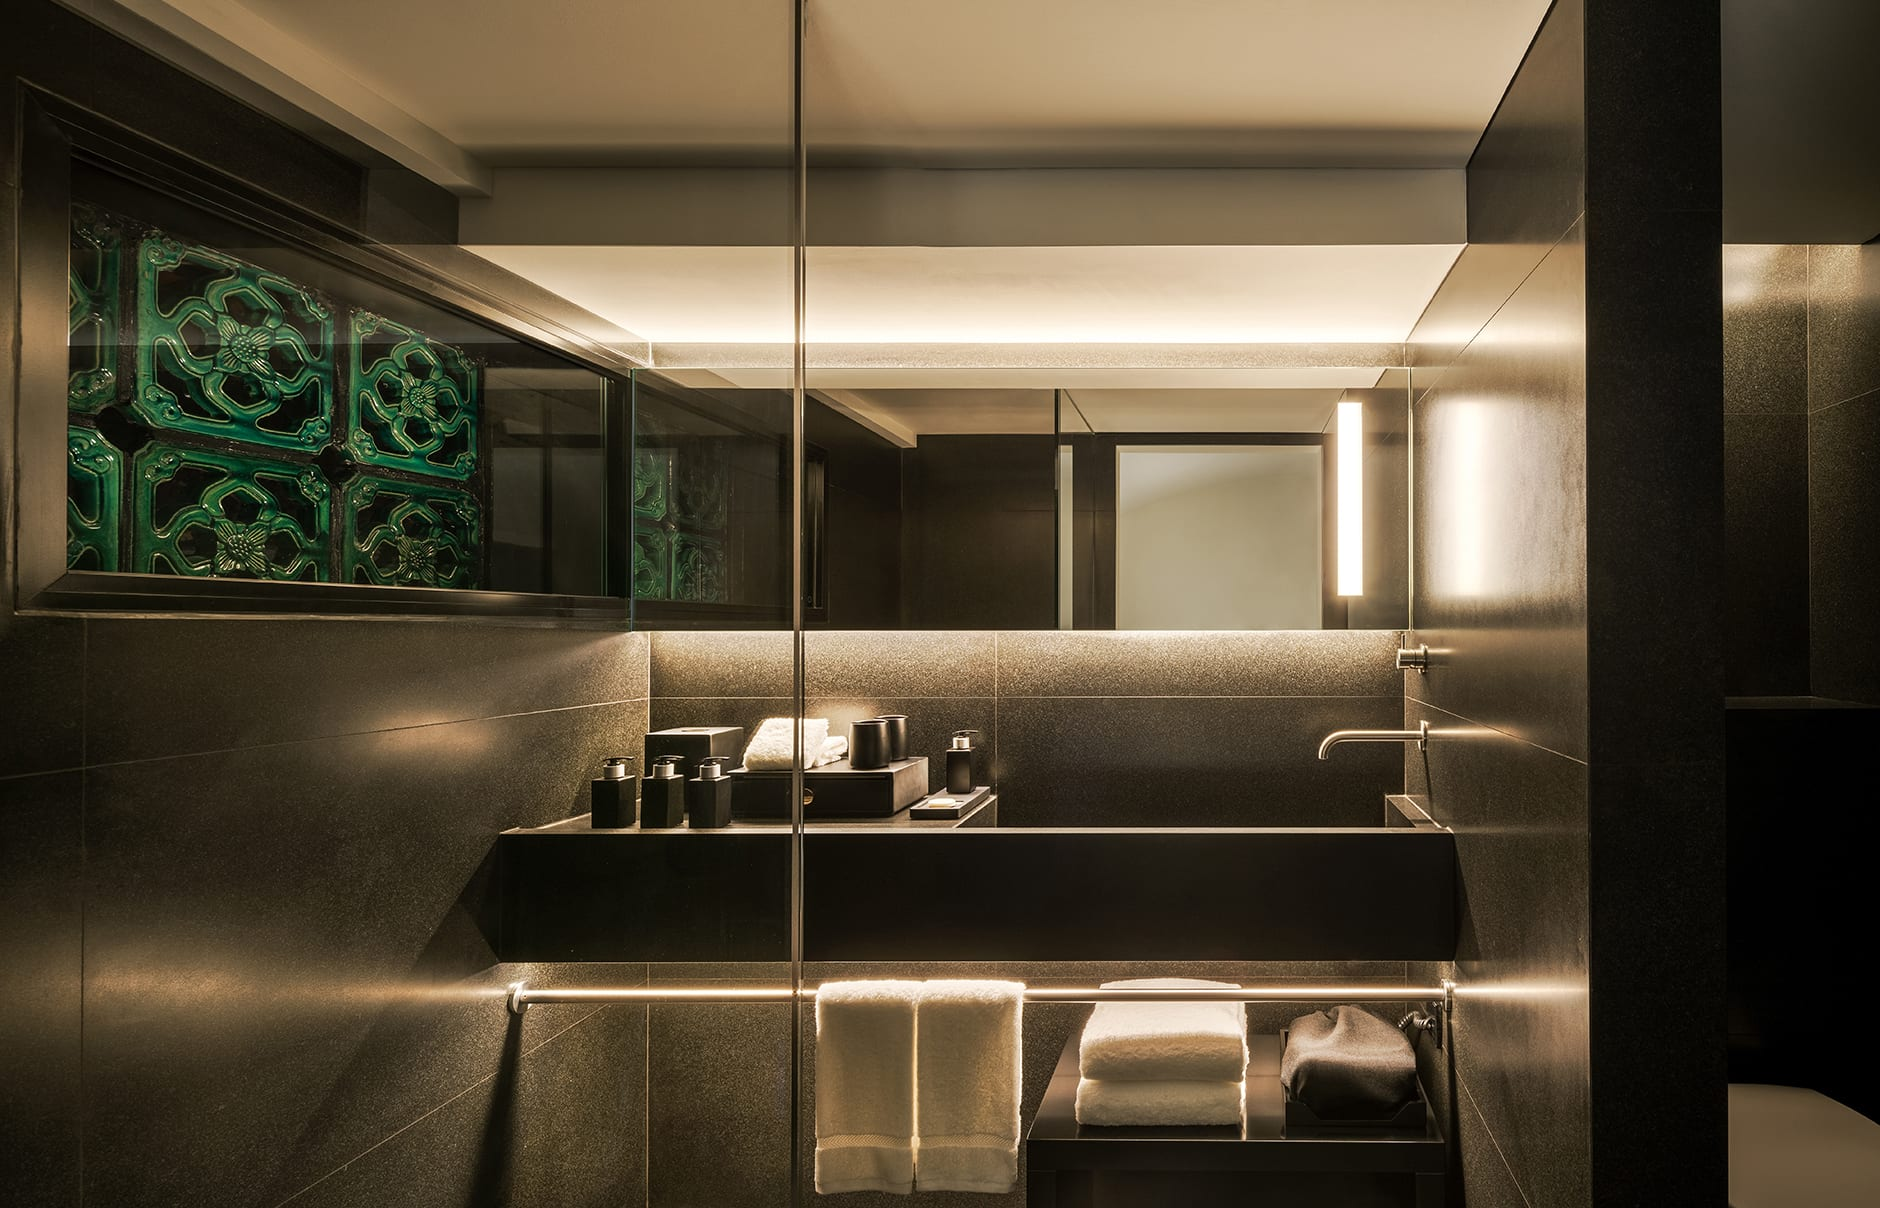 Six Senses Duxton, Singapore, Bathroom. © Six Senses Hotels Resorts Spas